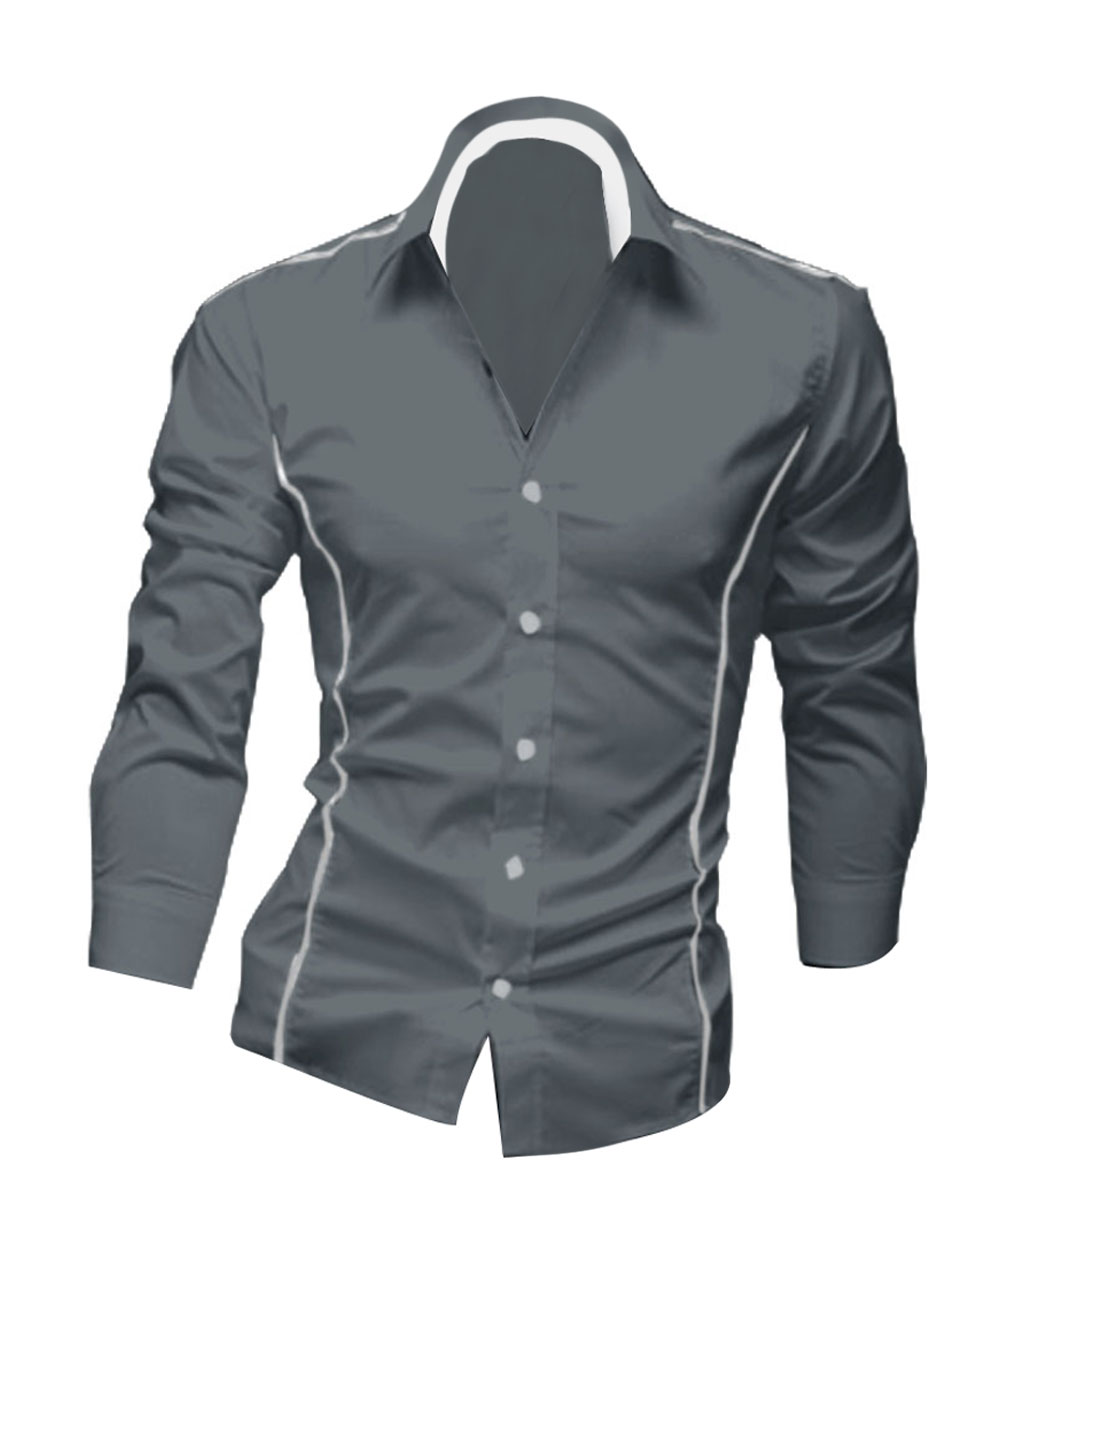 Men Stylish Gray Long Sleeve Point Collar Button Down Piped Detail Casual Shirt M